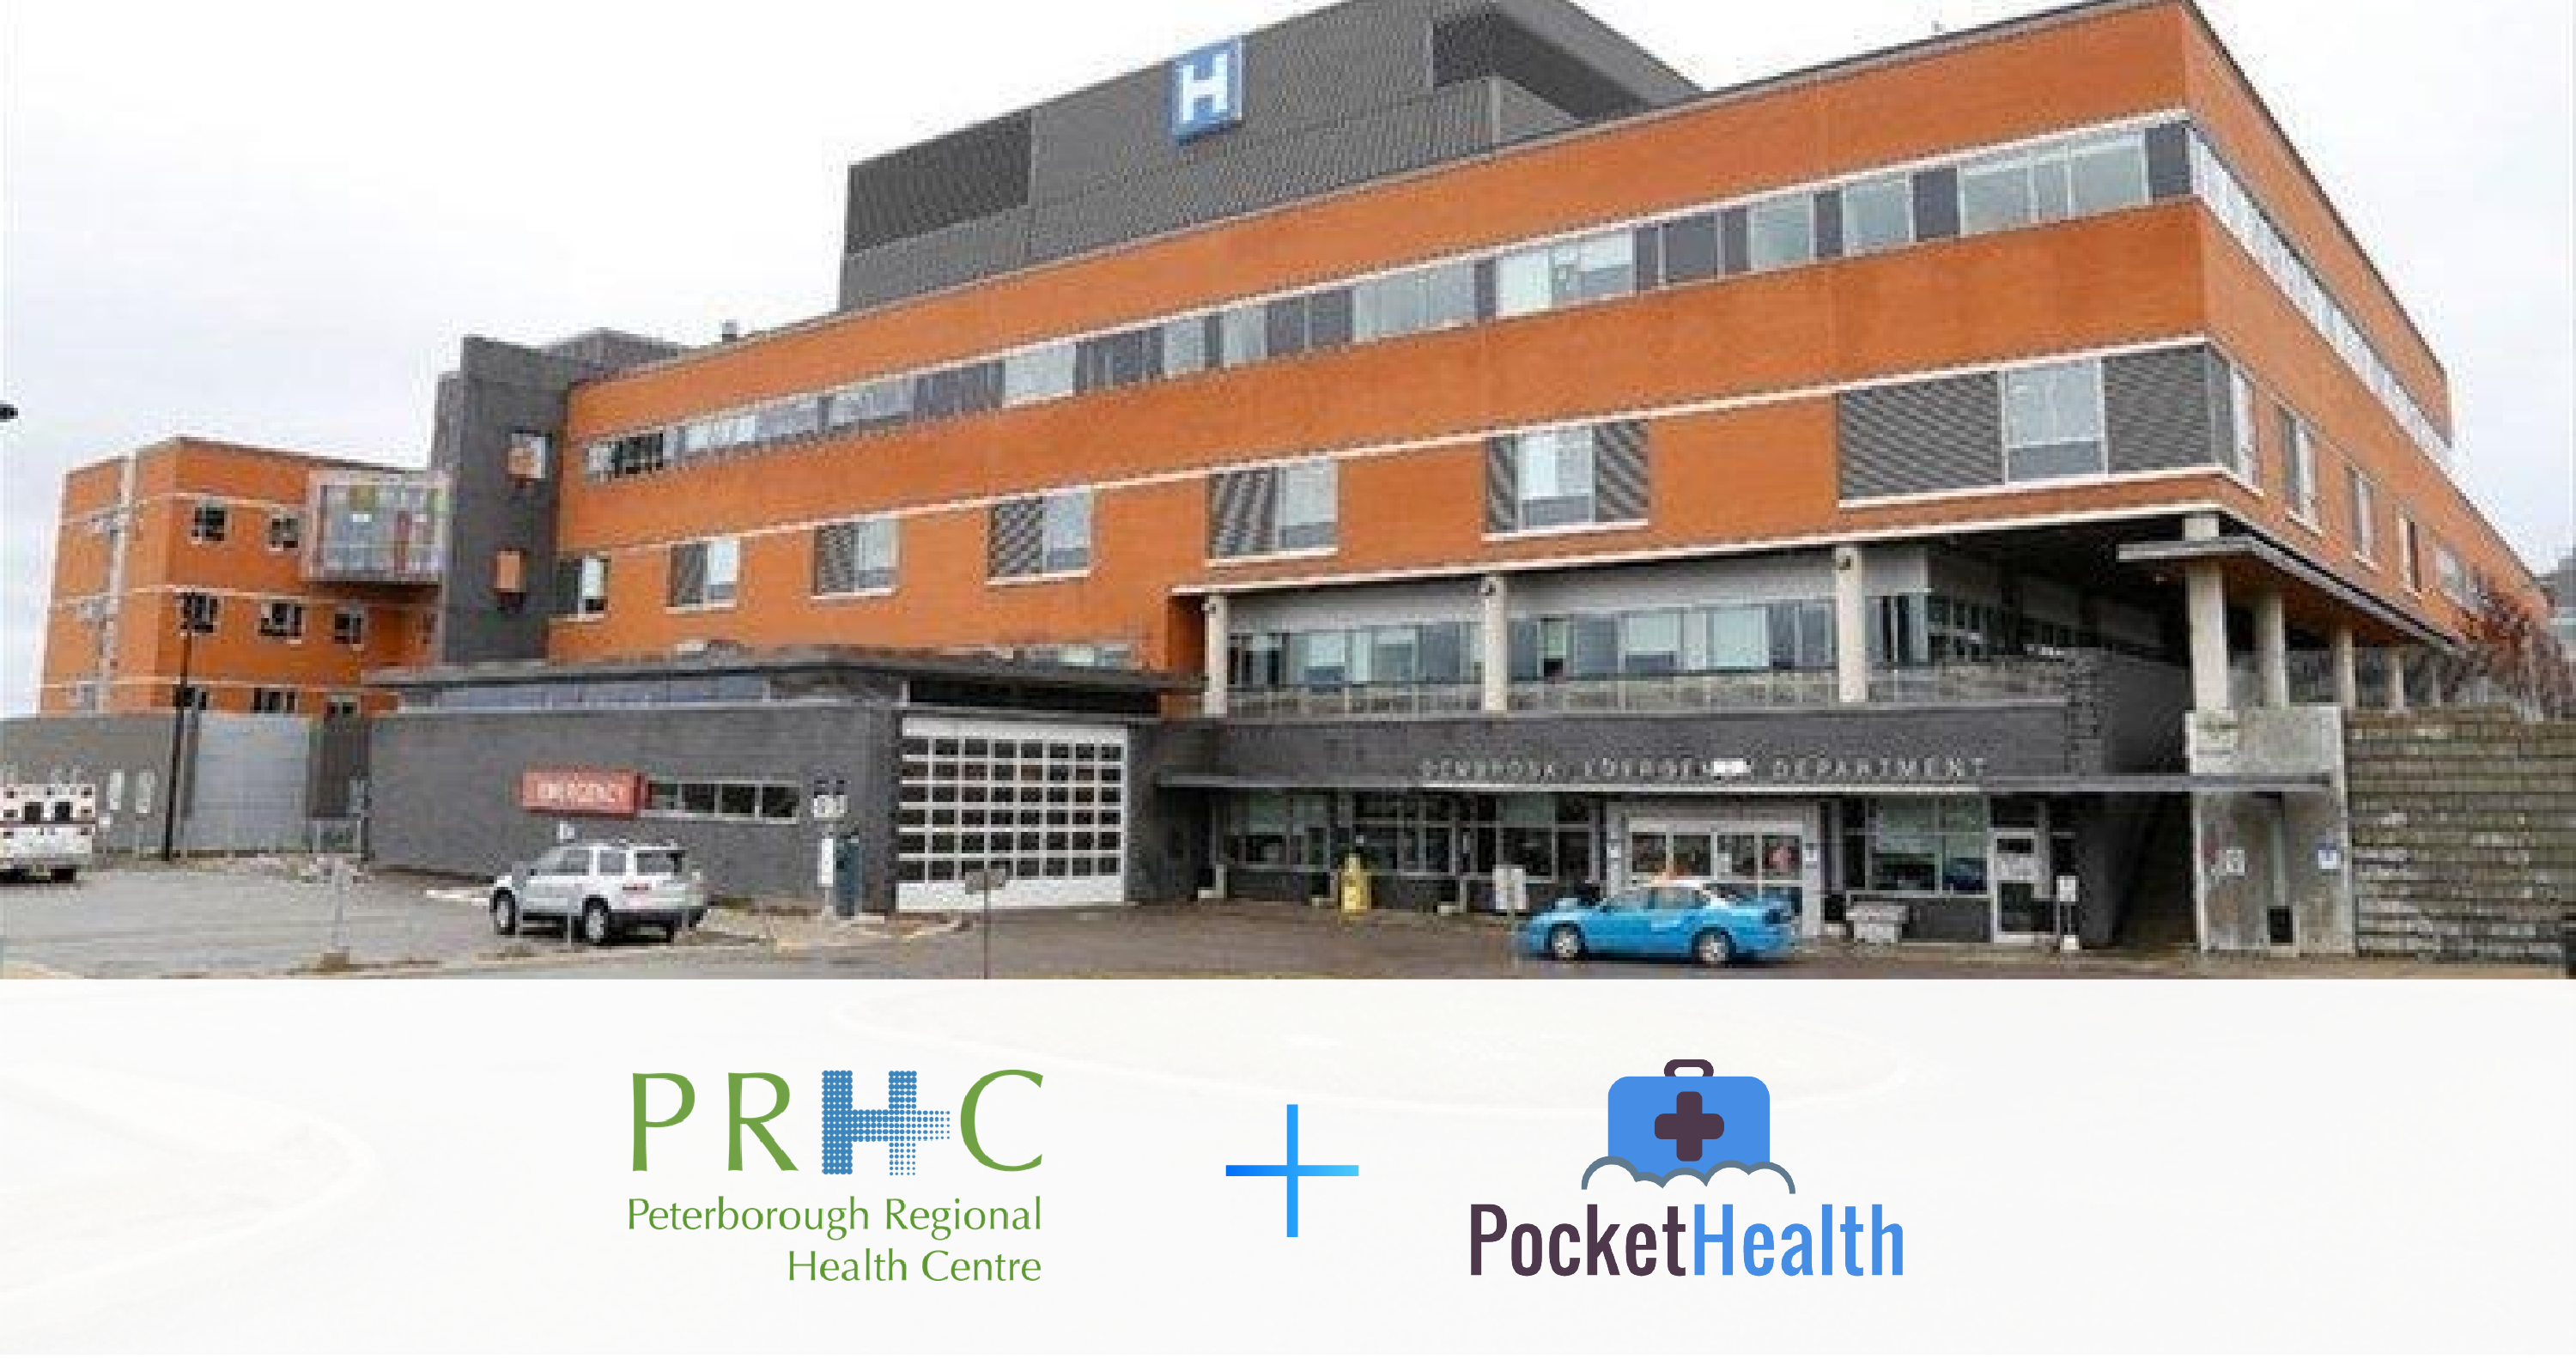 Peterborough Regional Health Centre Imaging Records Now Accessible via PocketHealth